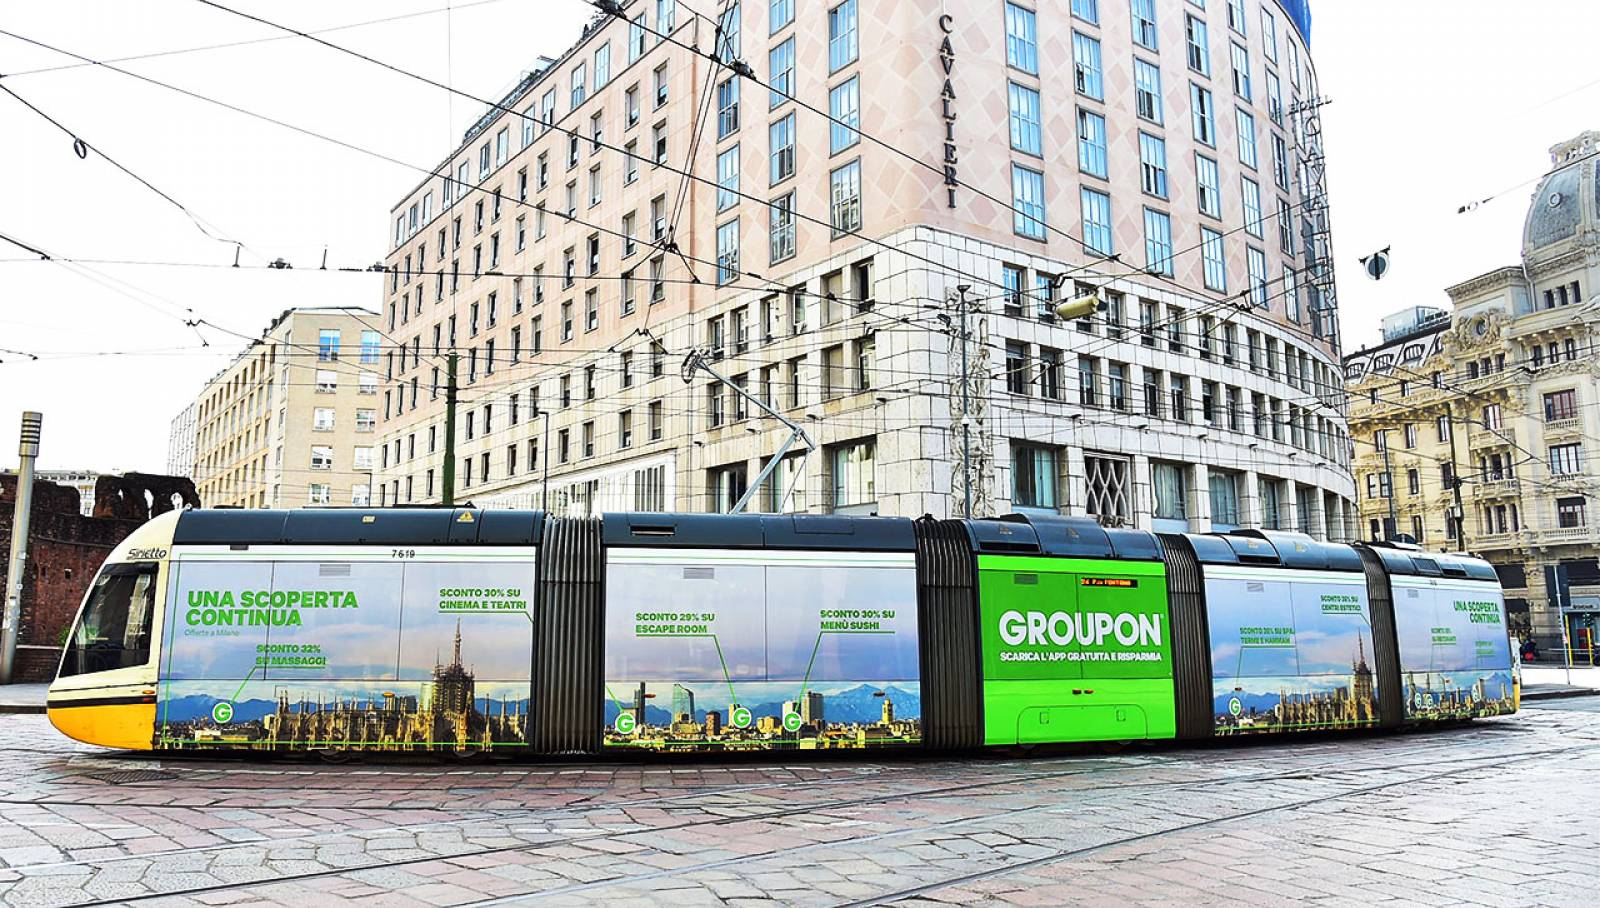 OOH Advertising in Milan Full-Wrap IGPDecaux for Groupon